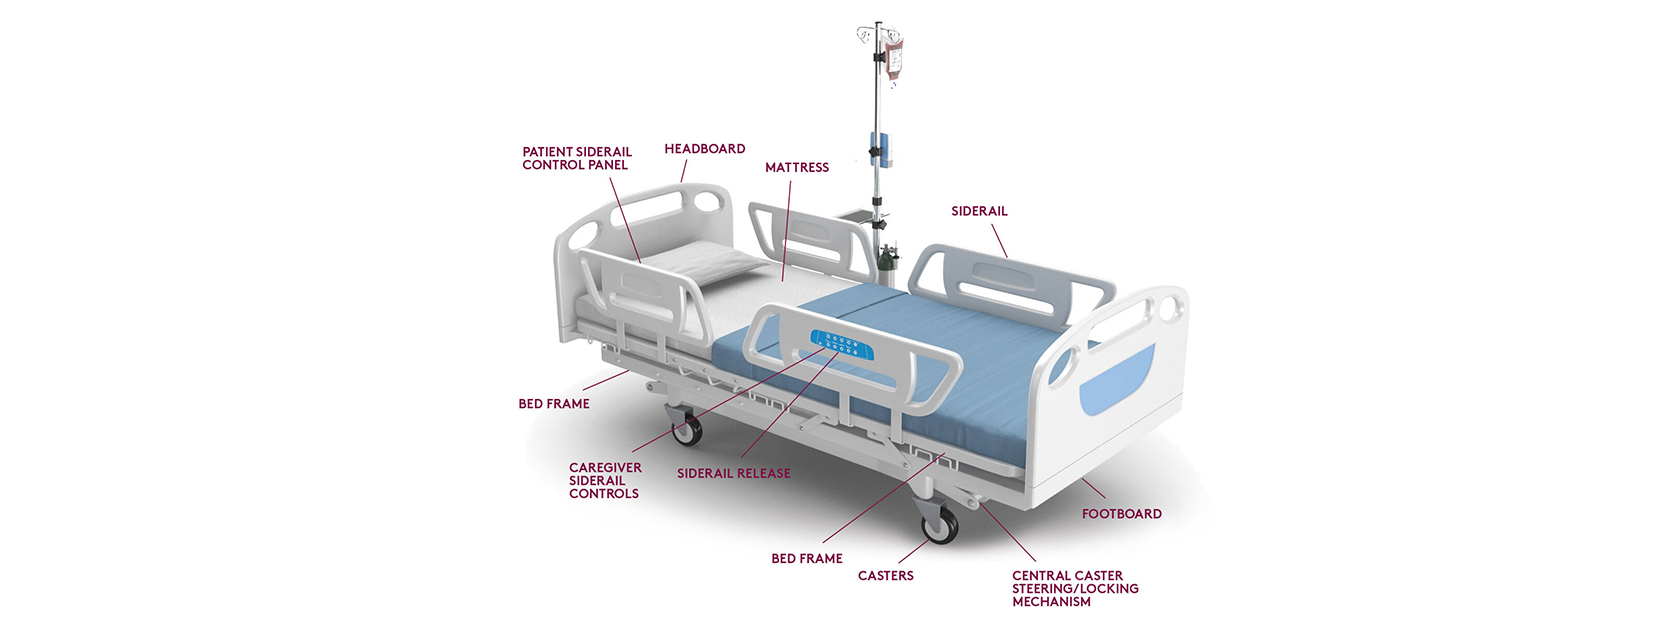 Anatomy of a hospital bed